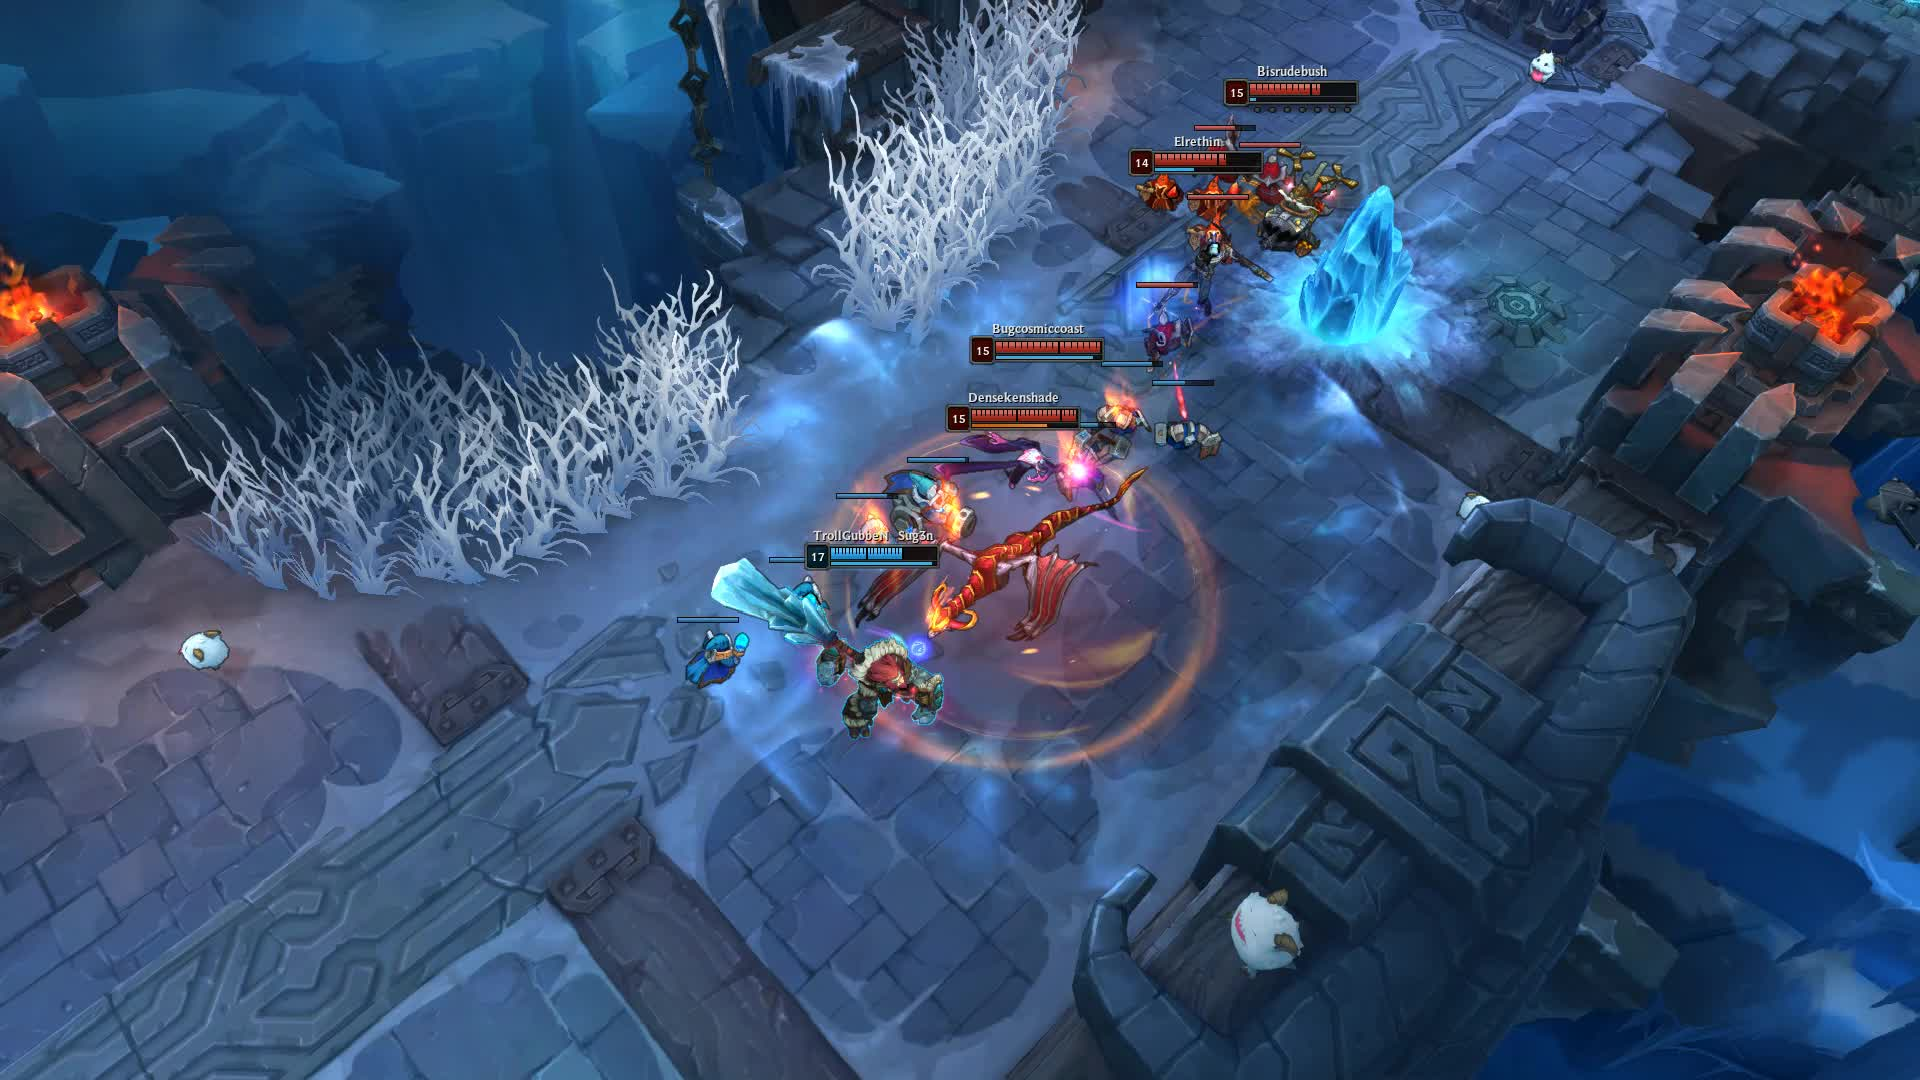 Gaming, Gif Your Game, GifYourGame, League, League of Legends, LeagueOfLegends, LoL, Penta Kill, PentaKill, TrollGubbeN, Penta Kill 2: TrollGubbeN GIFs